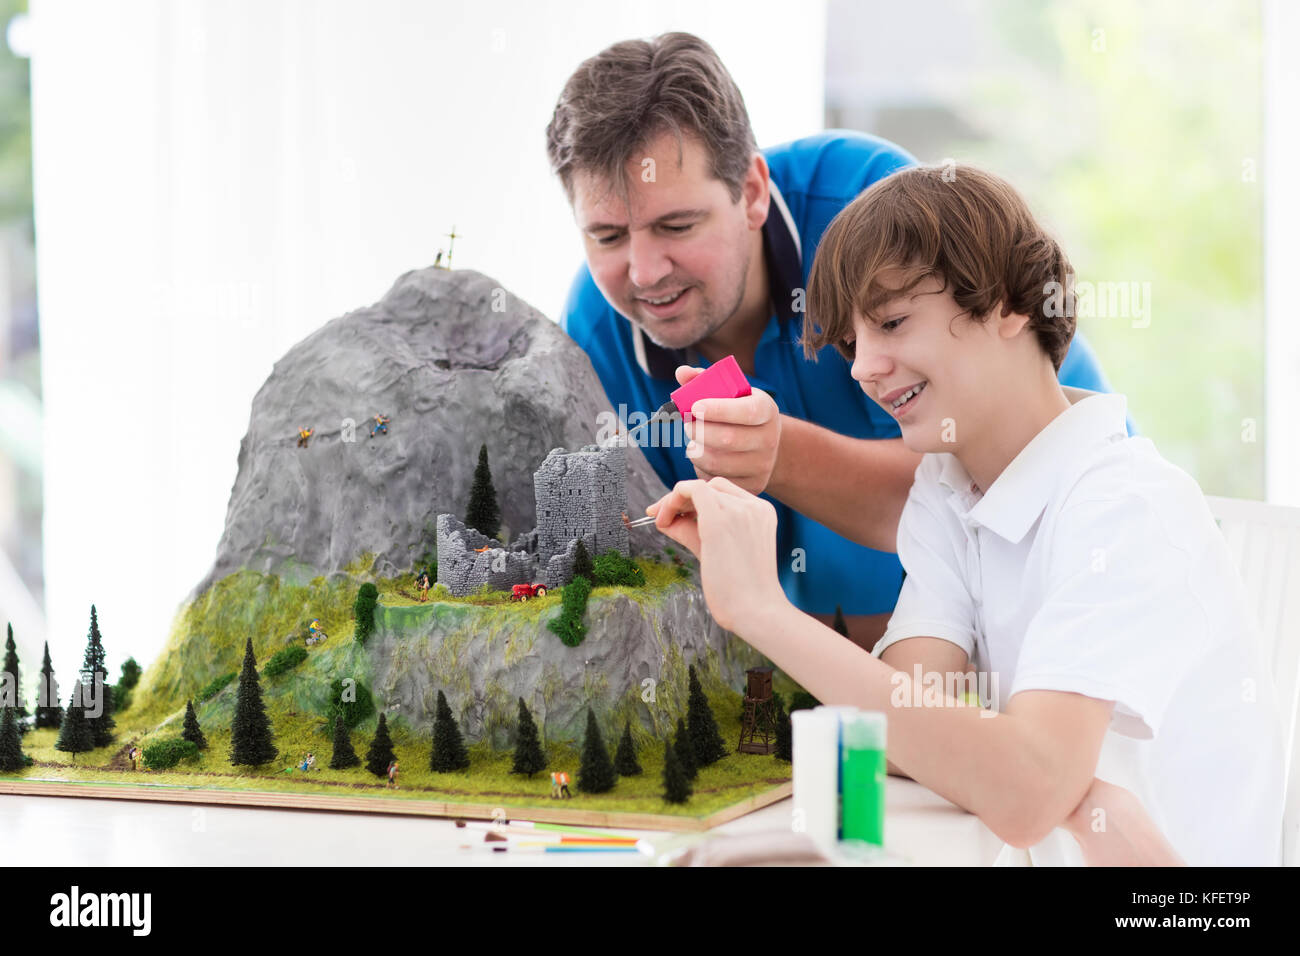 Father and son work on model building school project. Kids and parent build miniature scale model mountain for geography - Stock Image